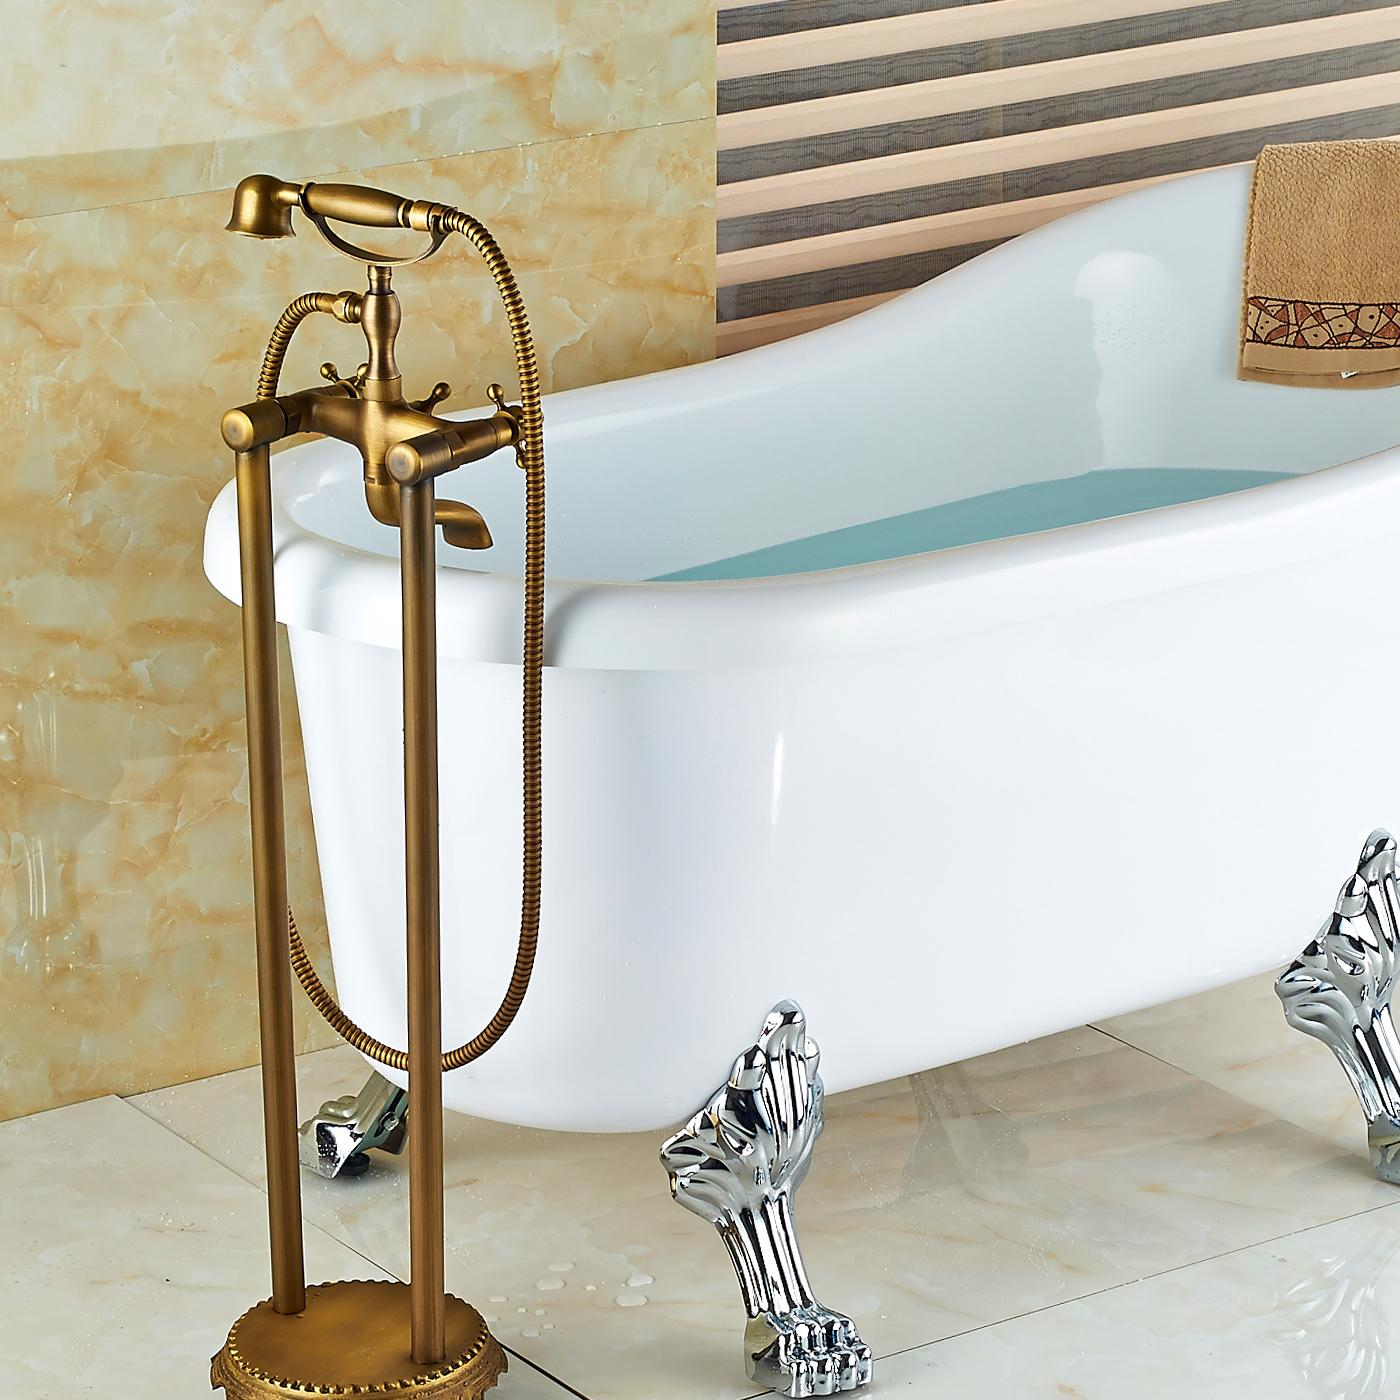 wholesale and retail floor mounted antique brass bathroom tub faucet floor mounted tub filler hand shower mixer tap bathtub faucet antique brass shower